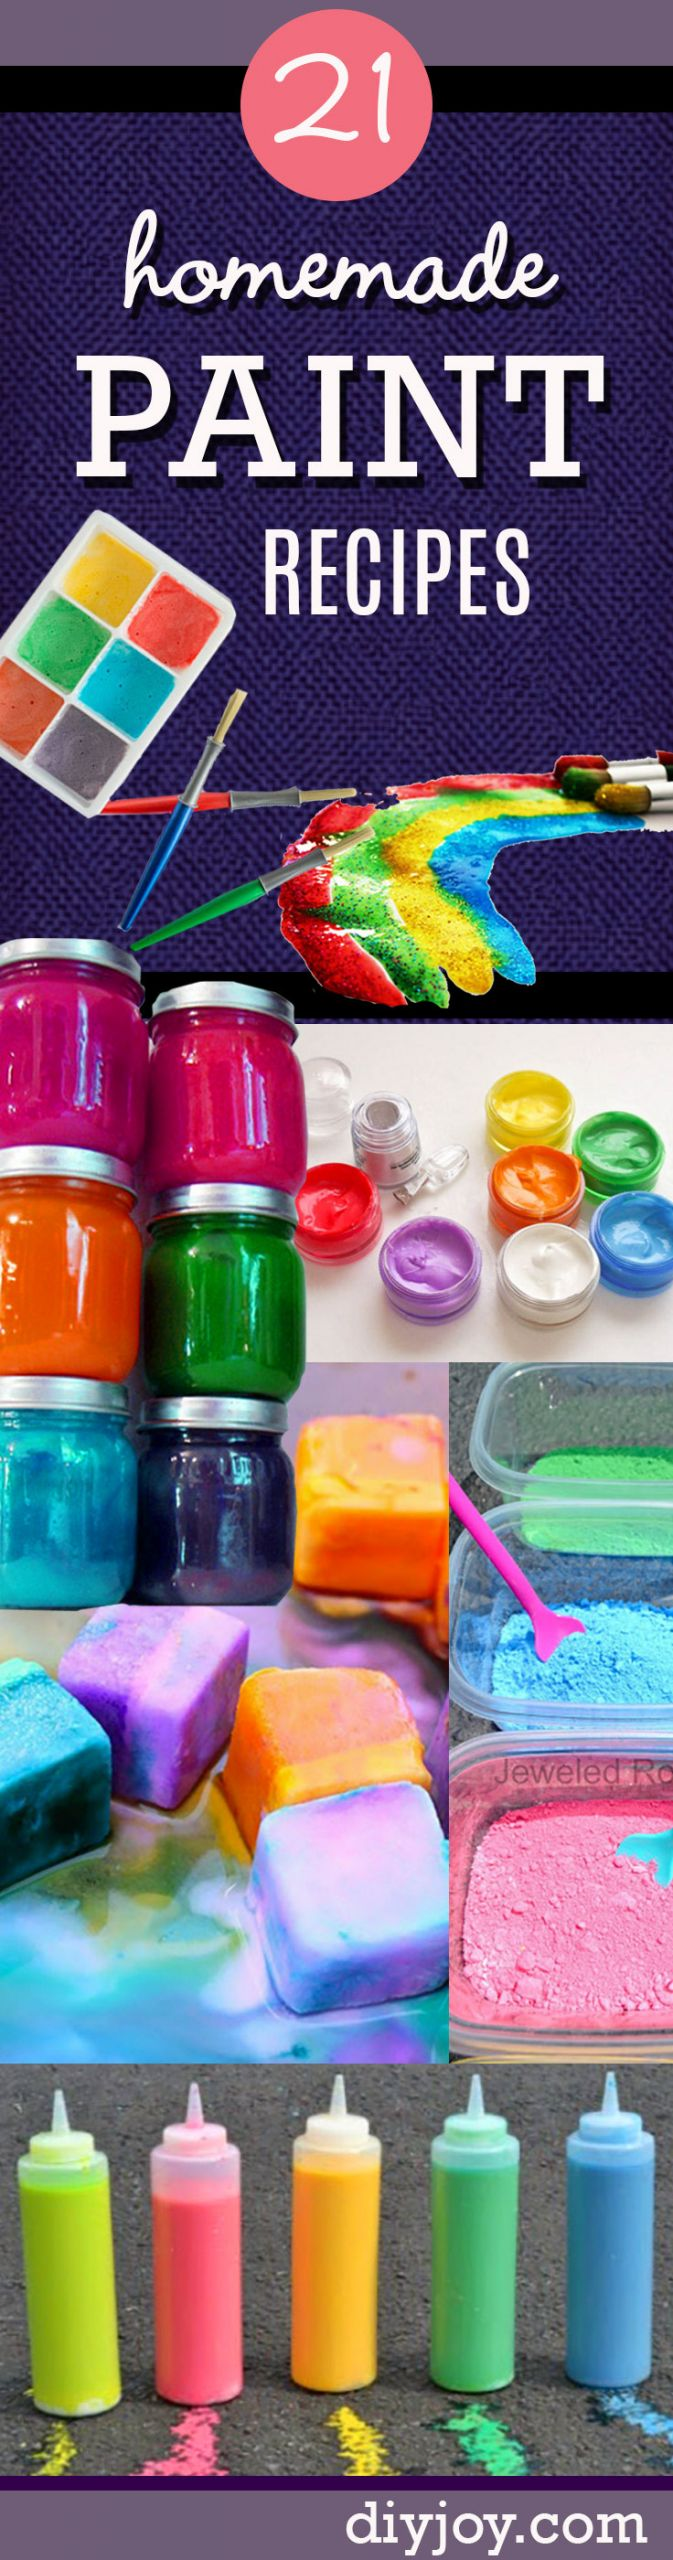 DIY Stuff For Kids  21 Easy DIY Paint Recipes Your Kids Will Go Crazy For